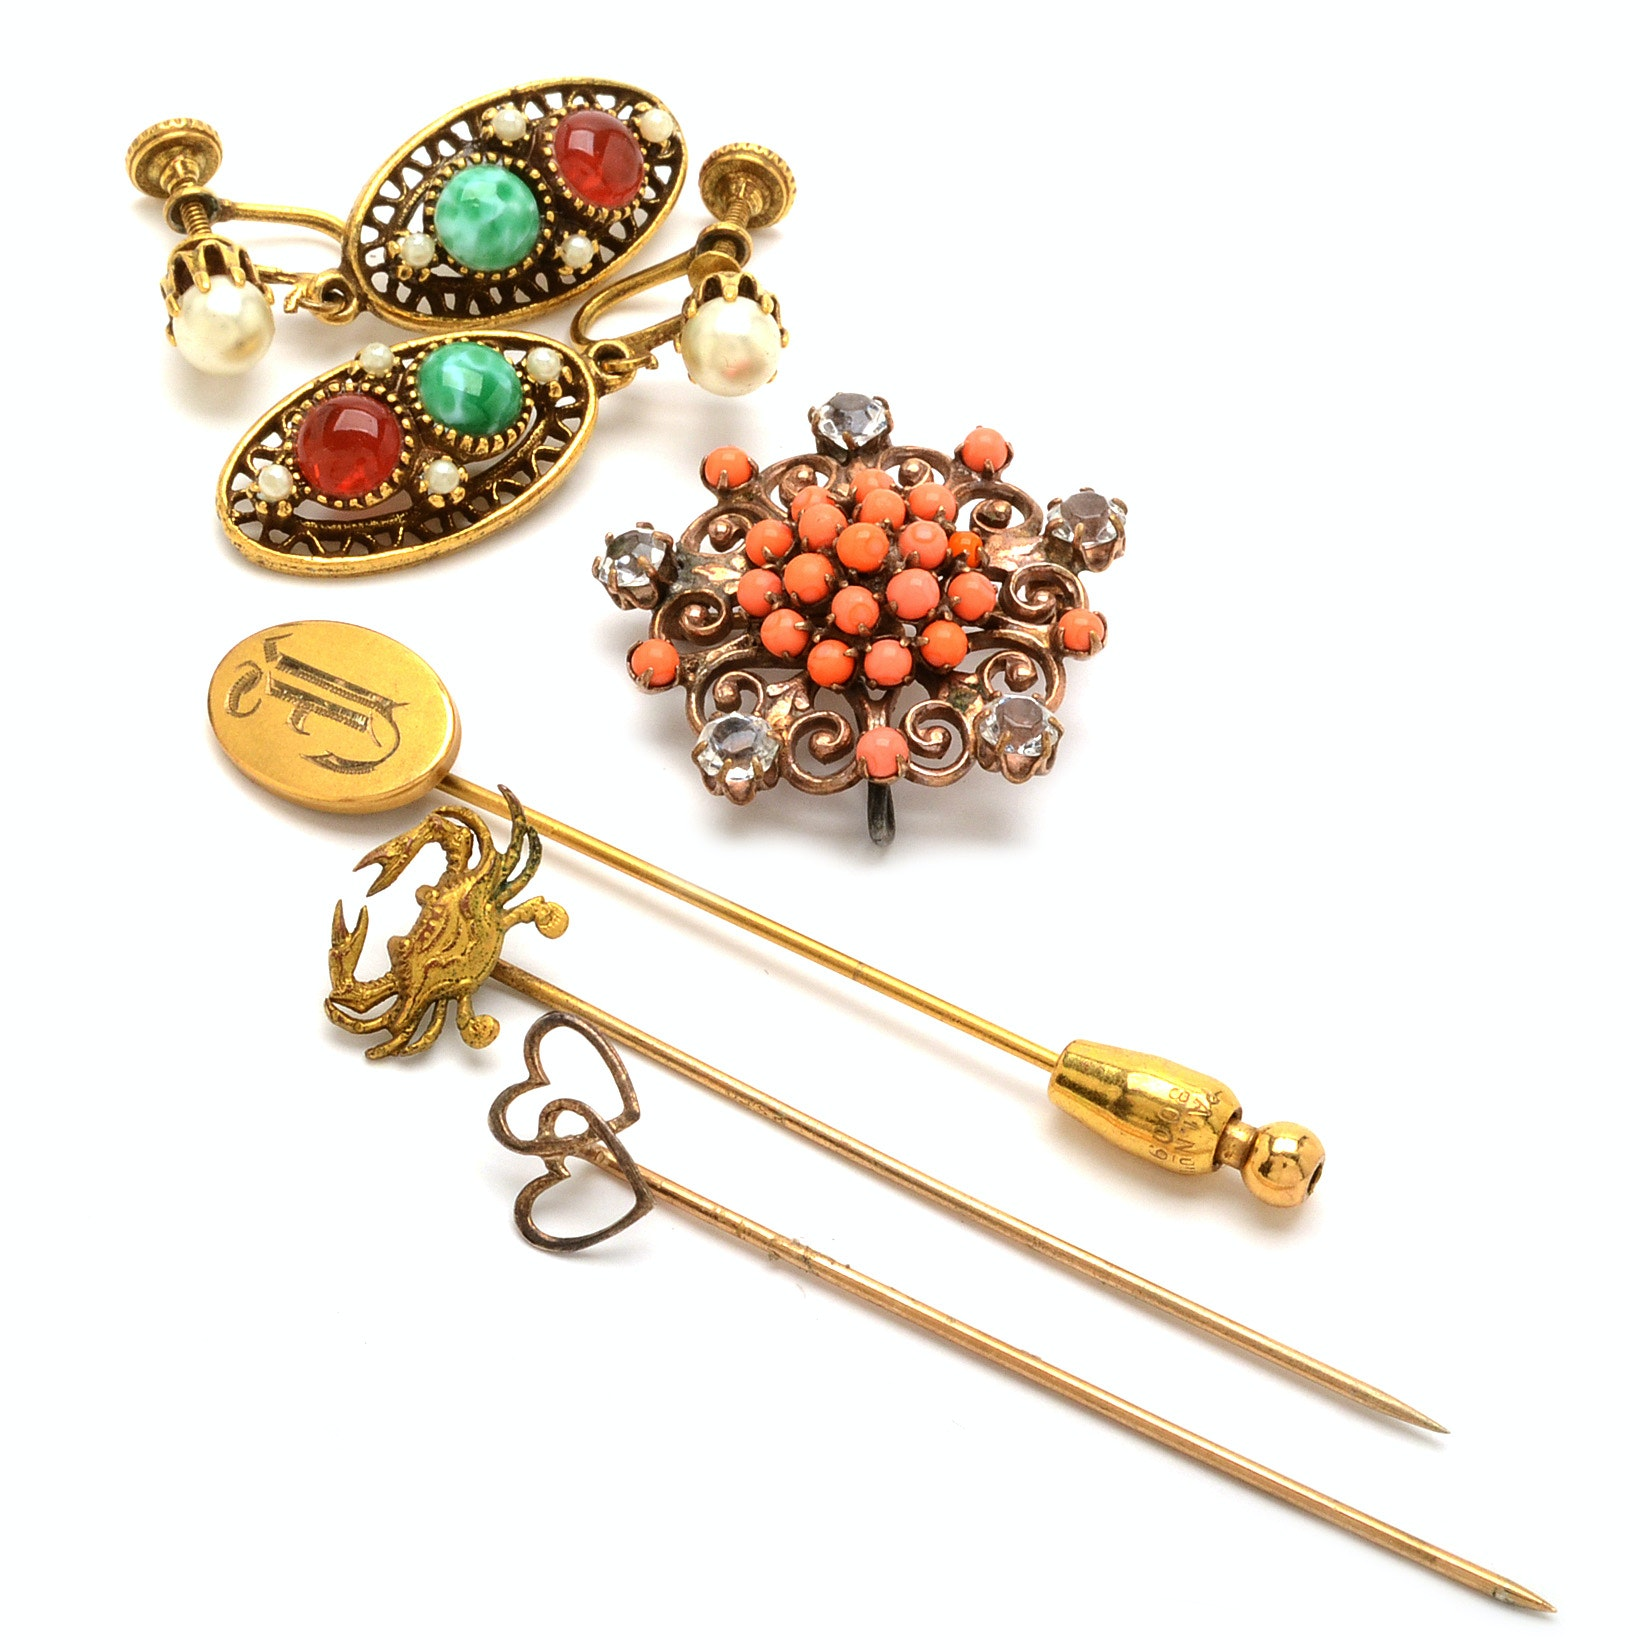 Vintage Jewelry With 10K Gold and Imitation Stone Elements